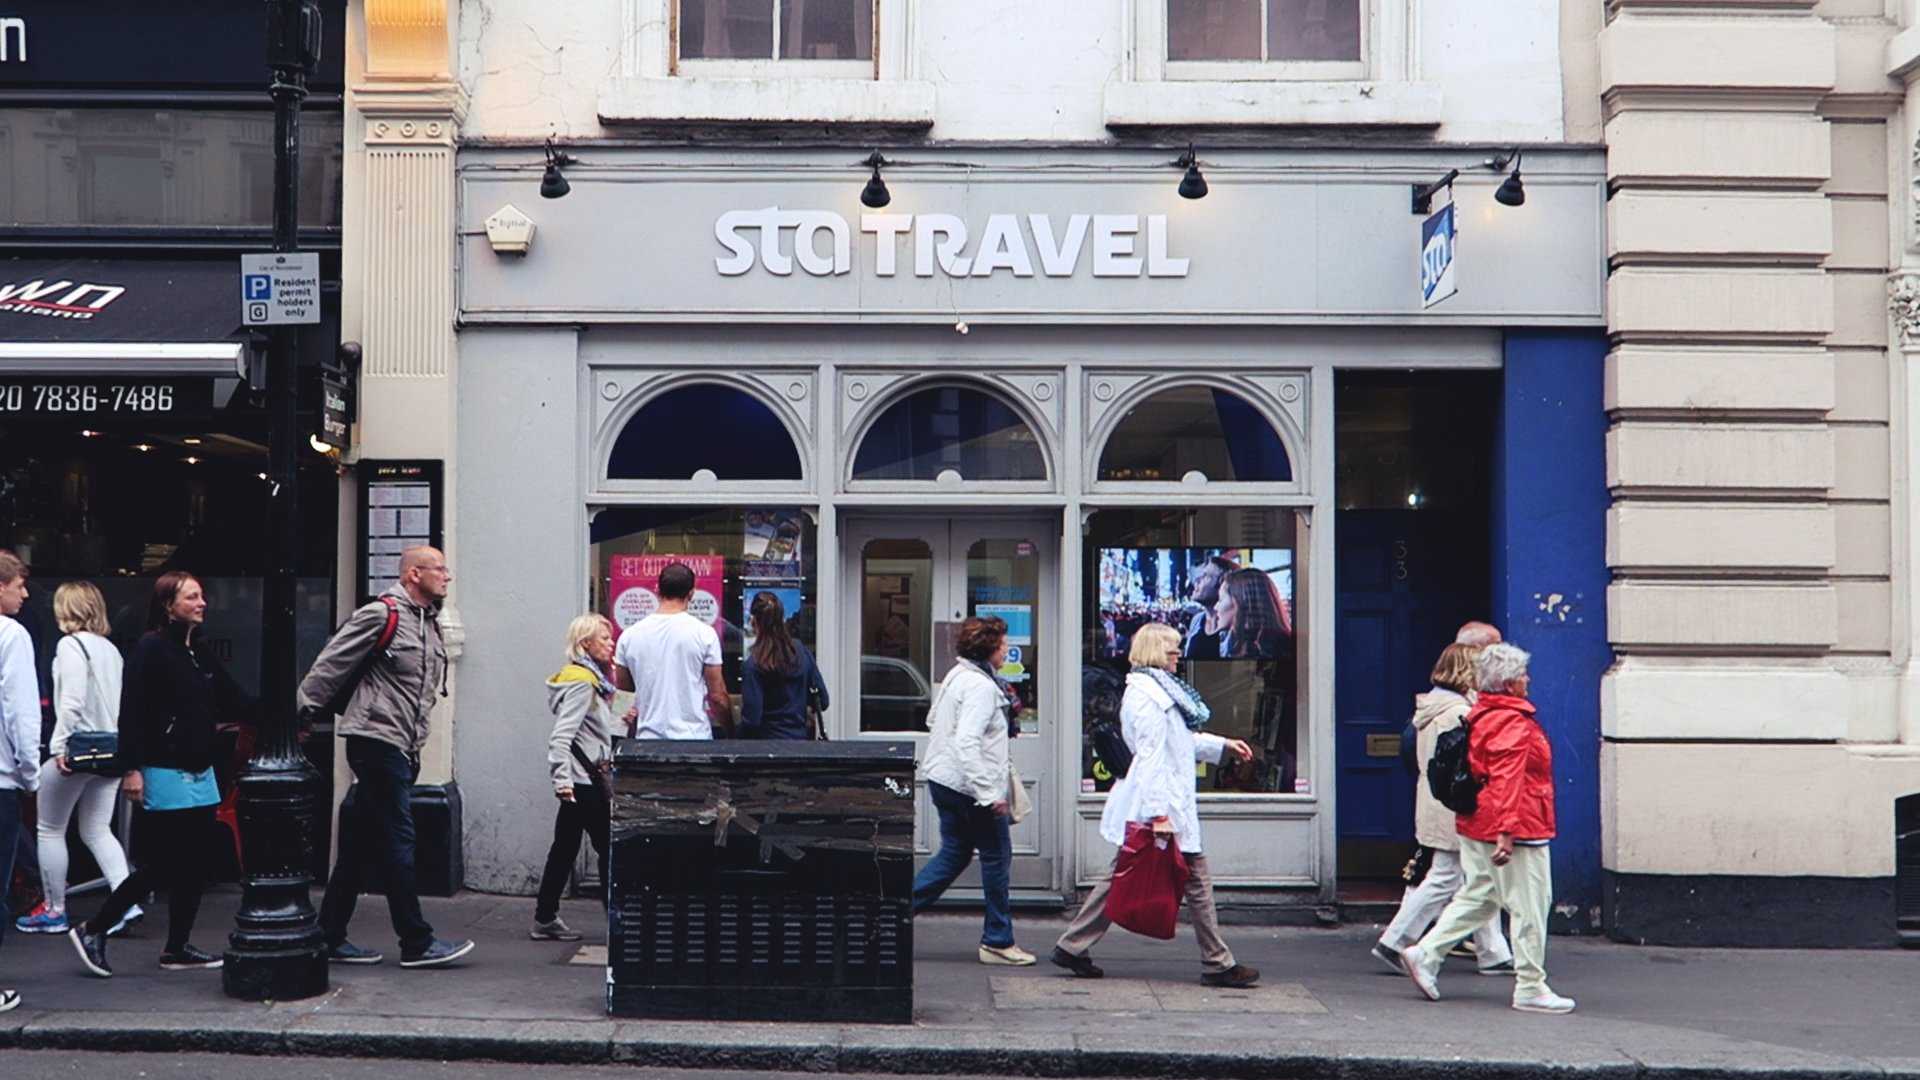 STA Travel Covent Garden